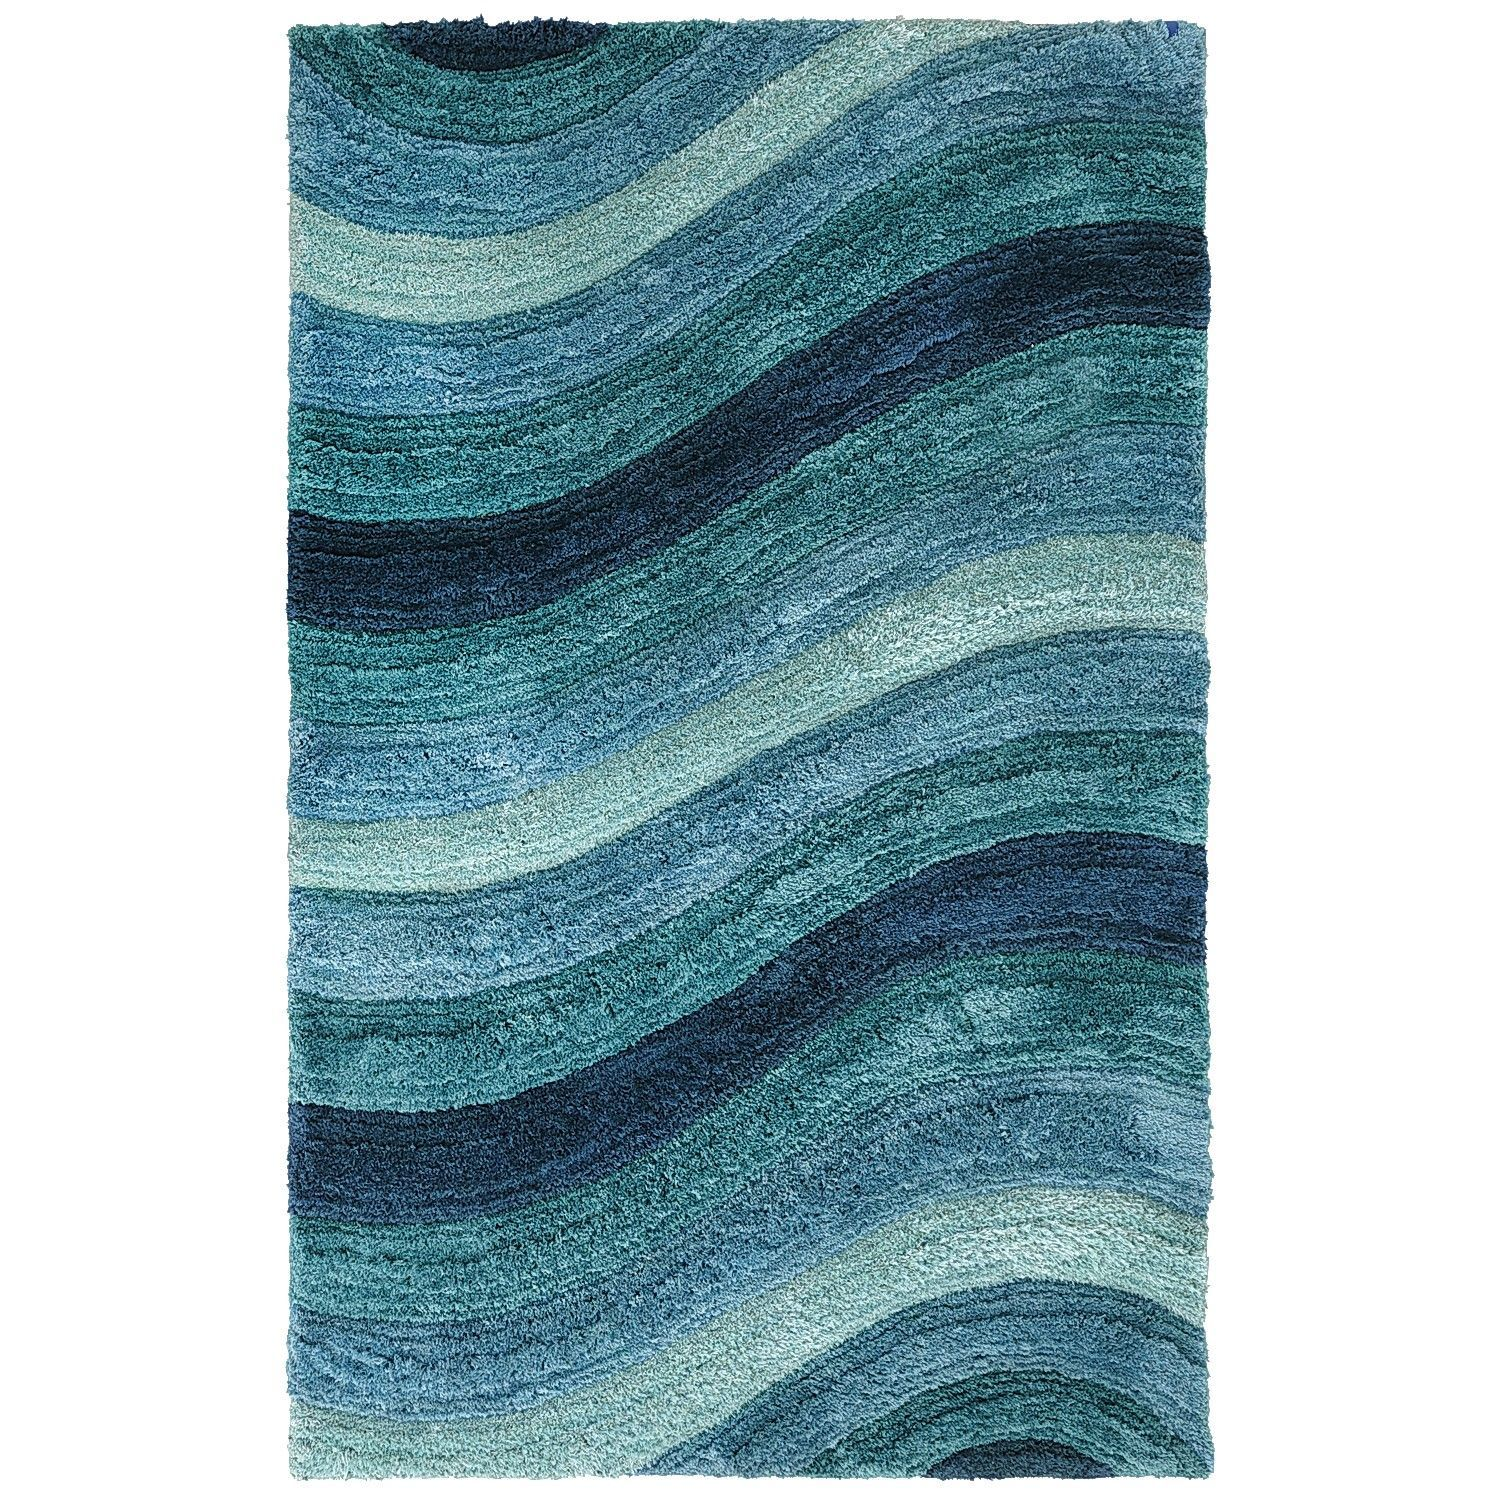 Perfect Larue Wave Shag Rugs   Teal